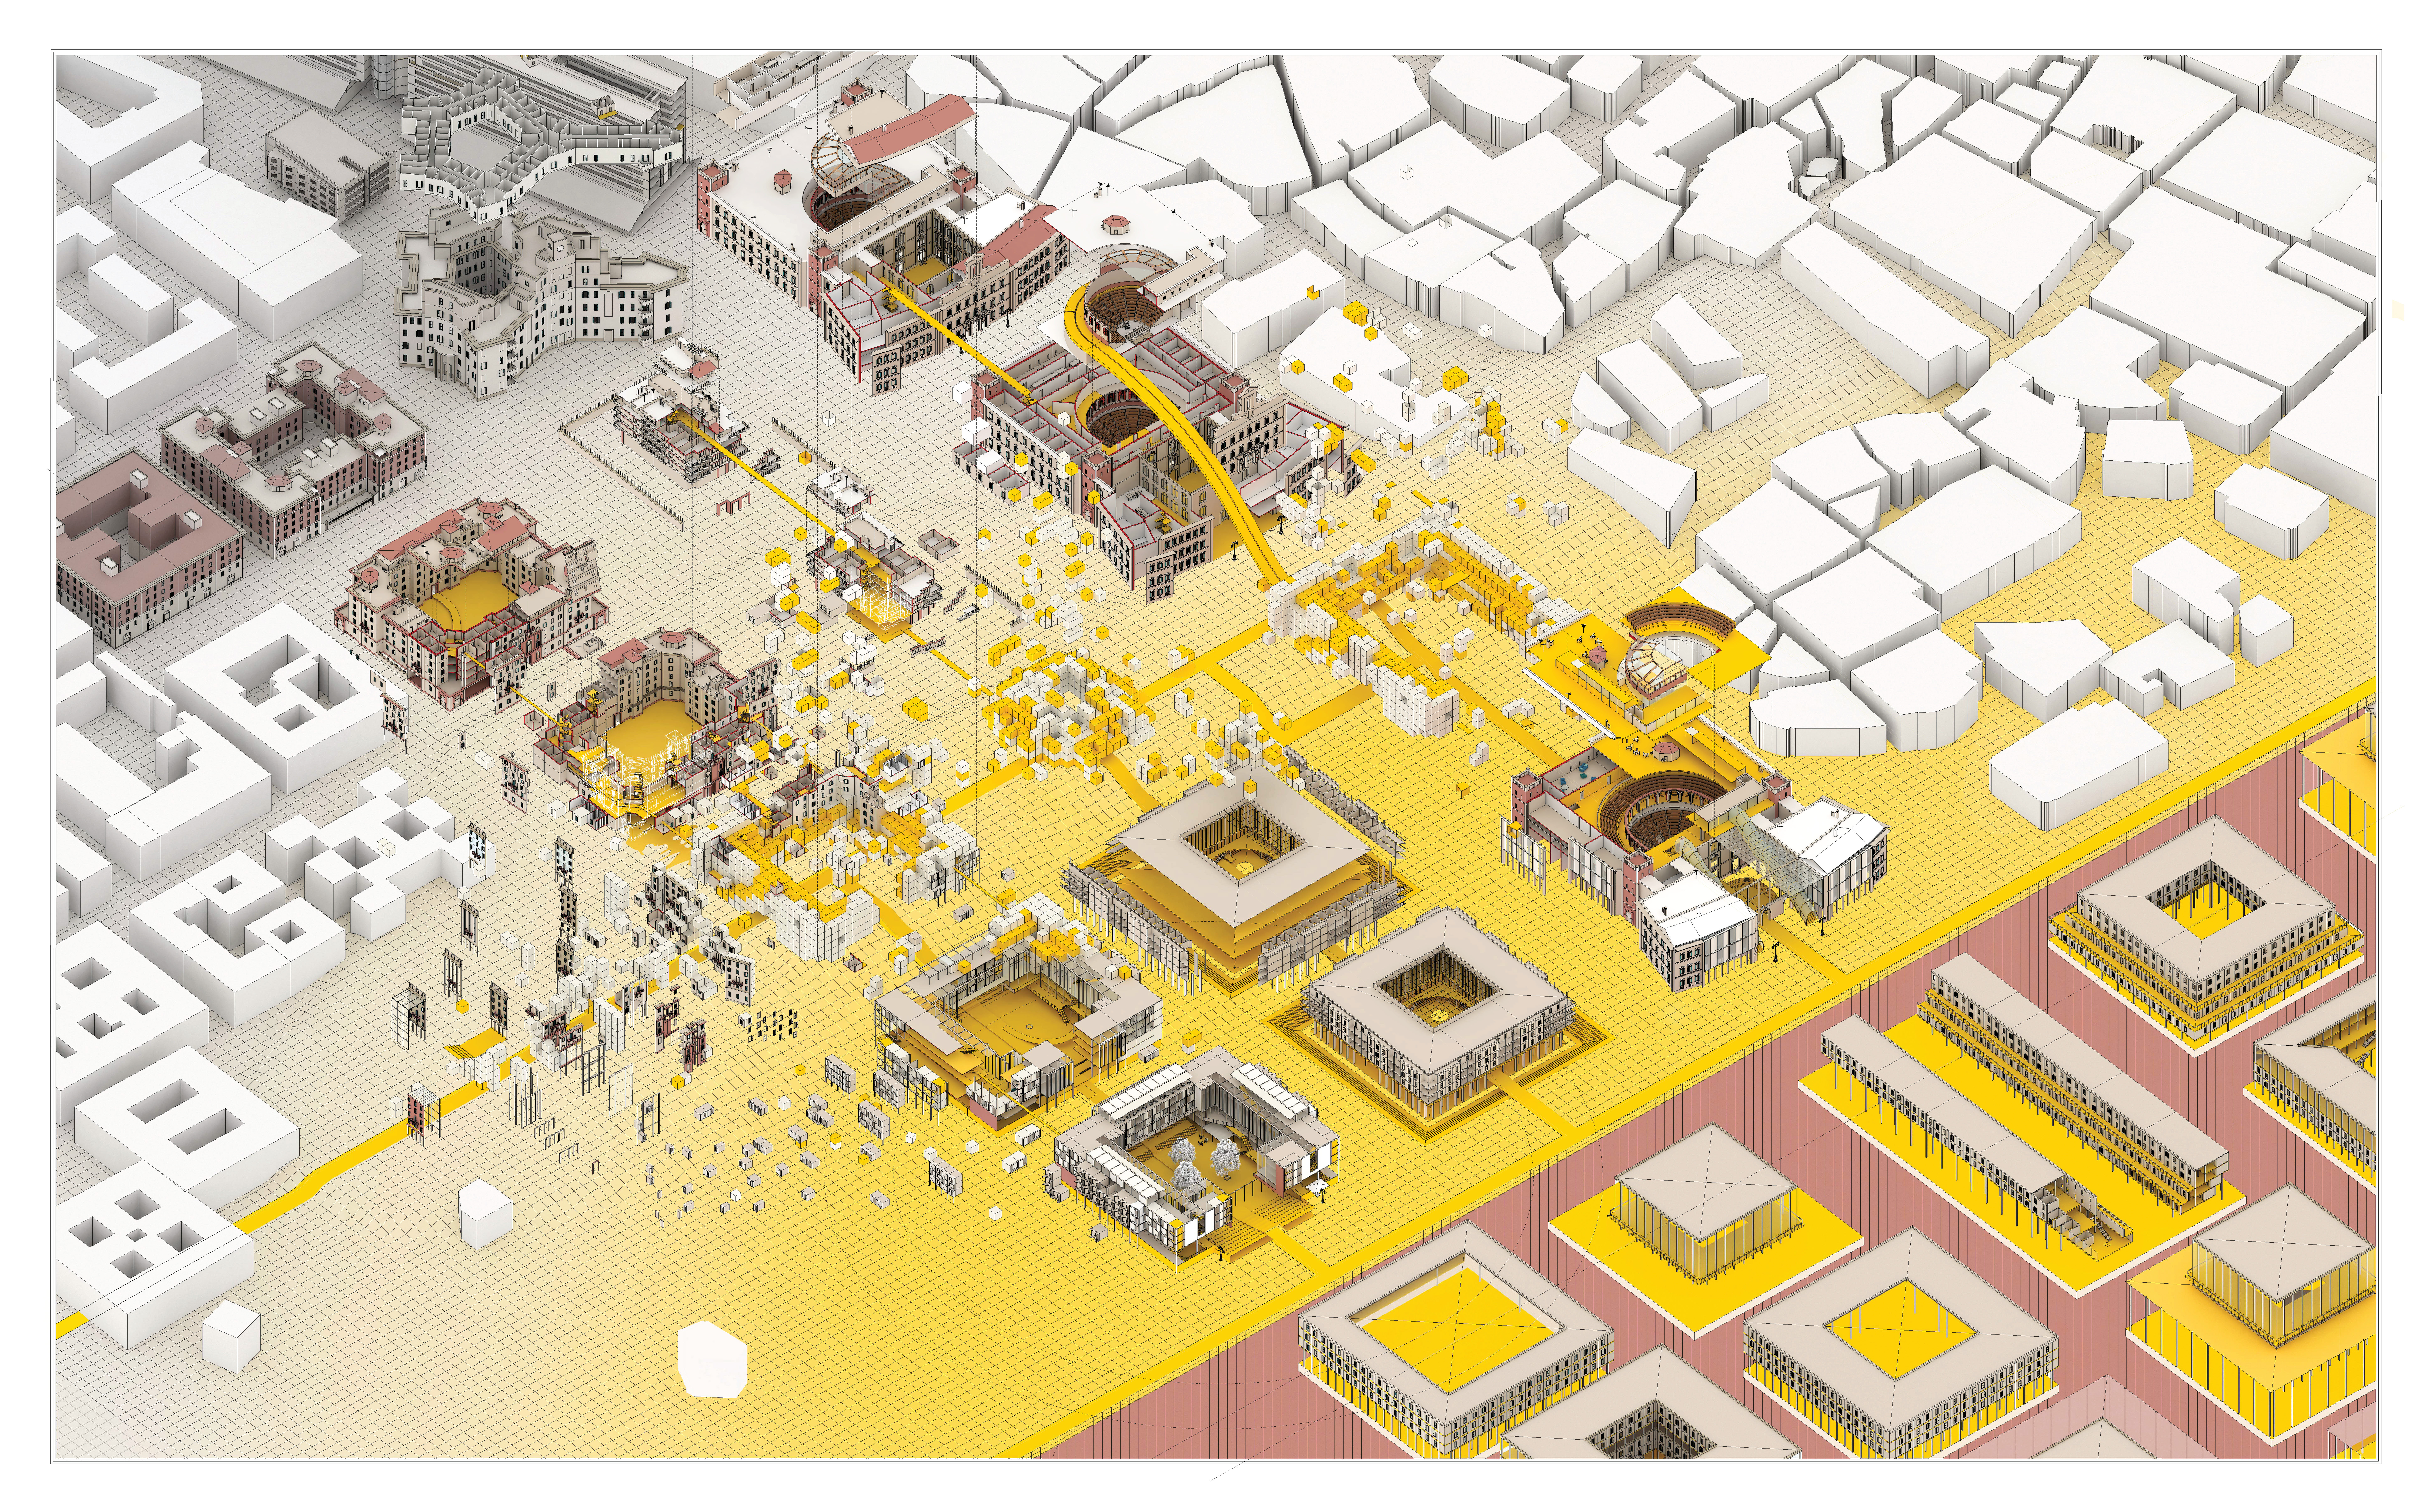 City of Golden Squares